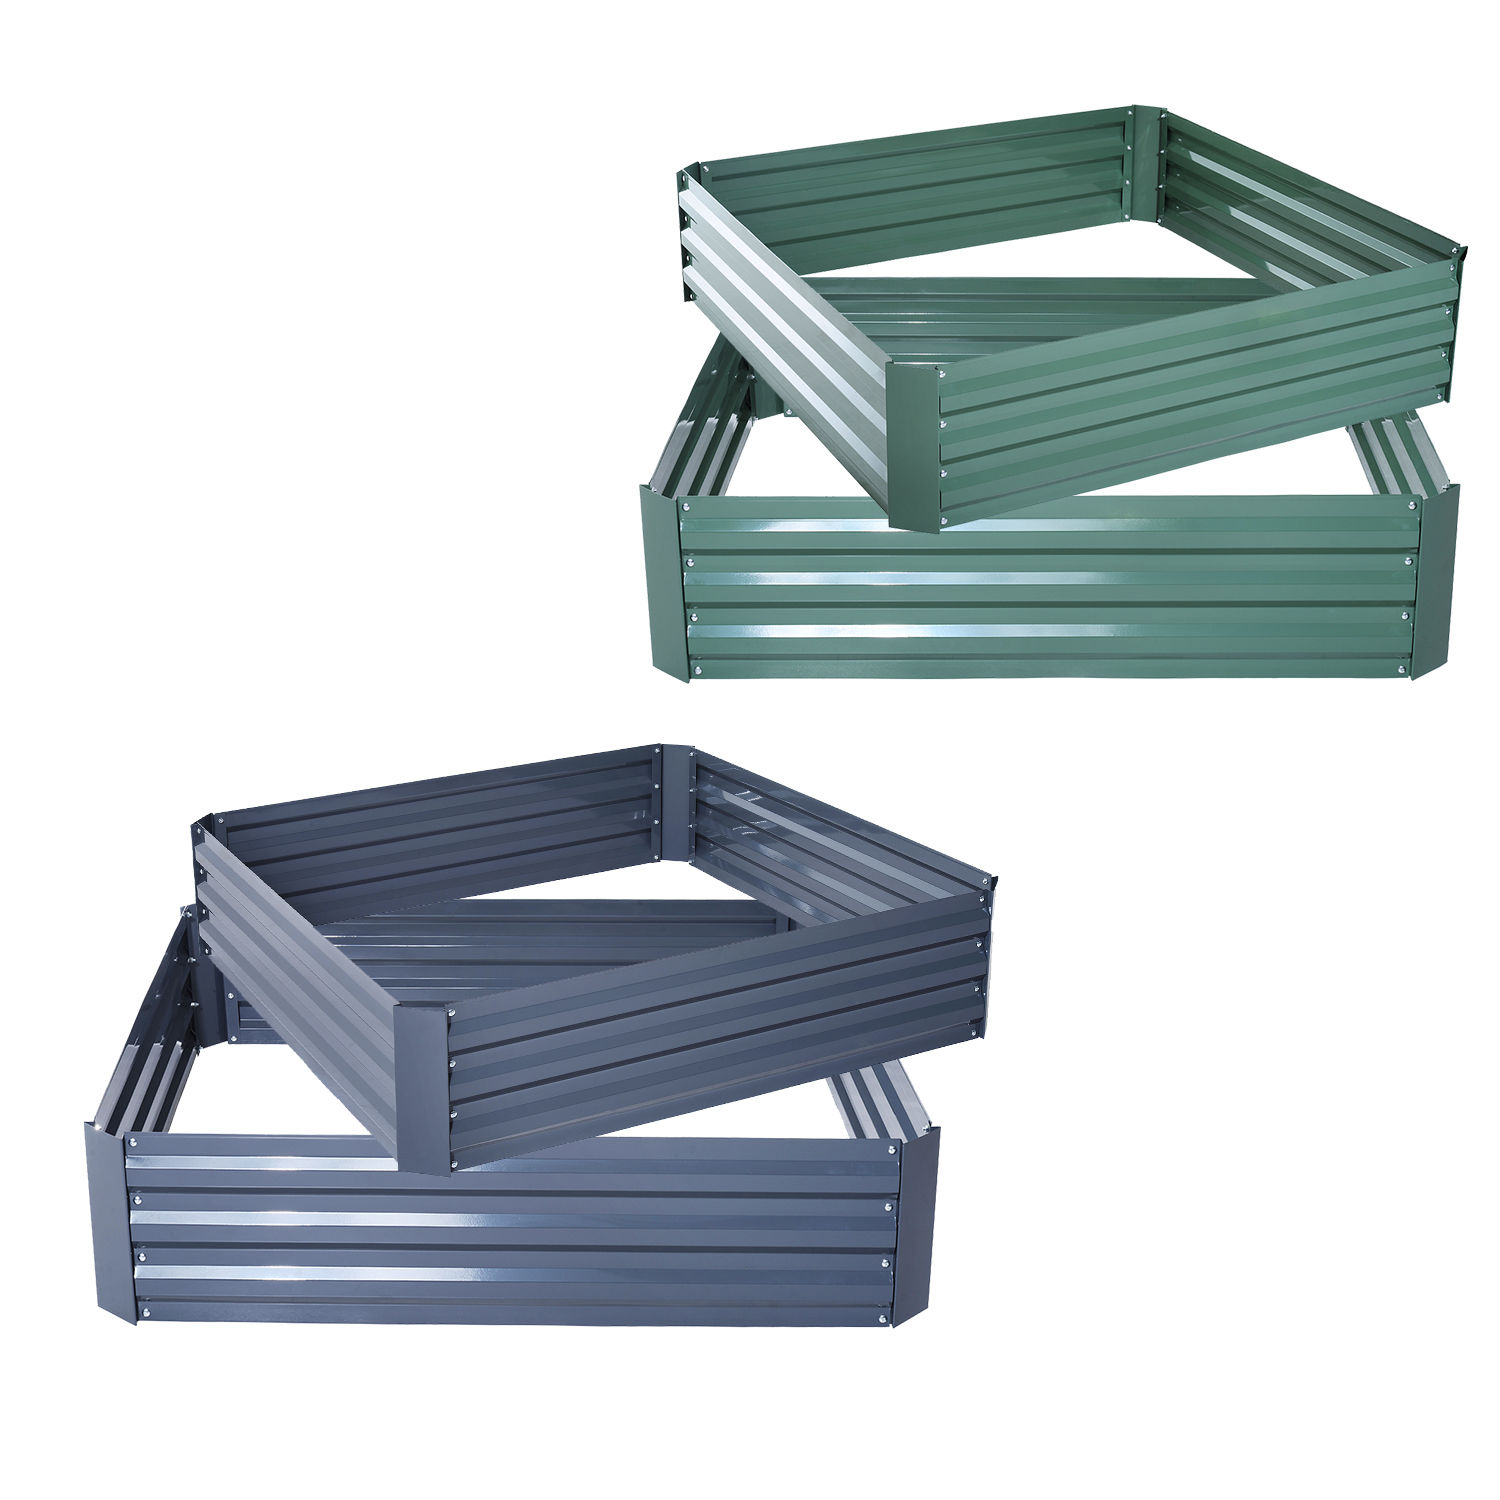 Picture of: 2pc 24×24 Galvanized Metal Raised Vegetable Garden Bed Plant Box Growing Flowers Ebay